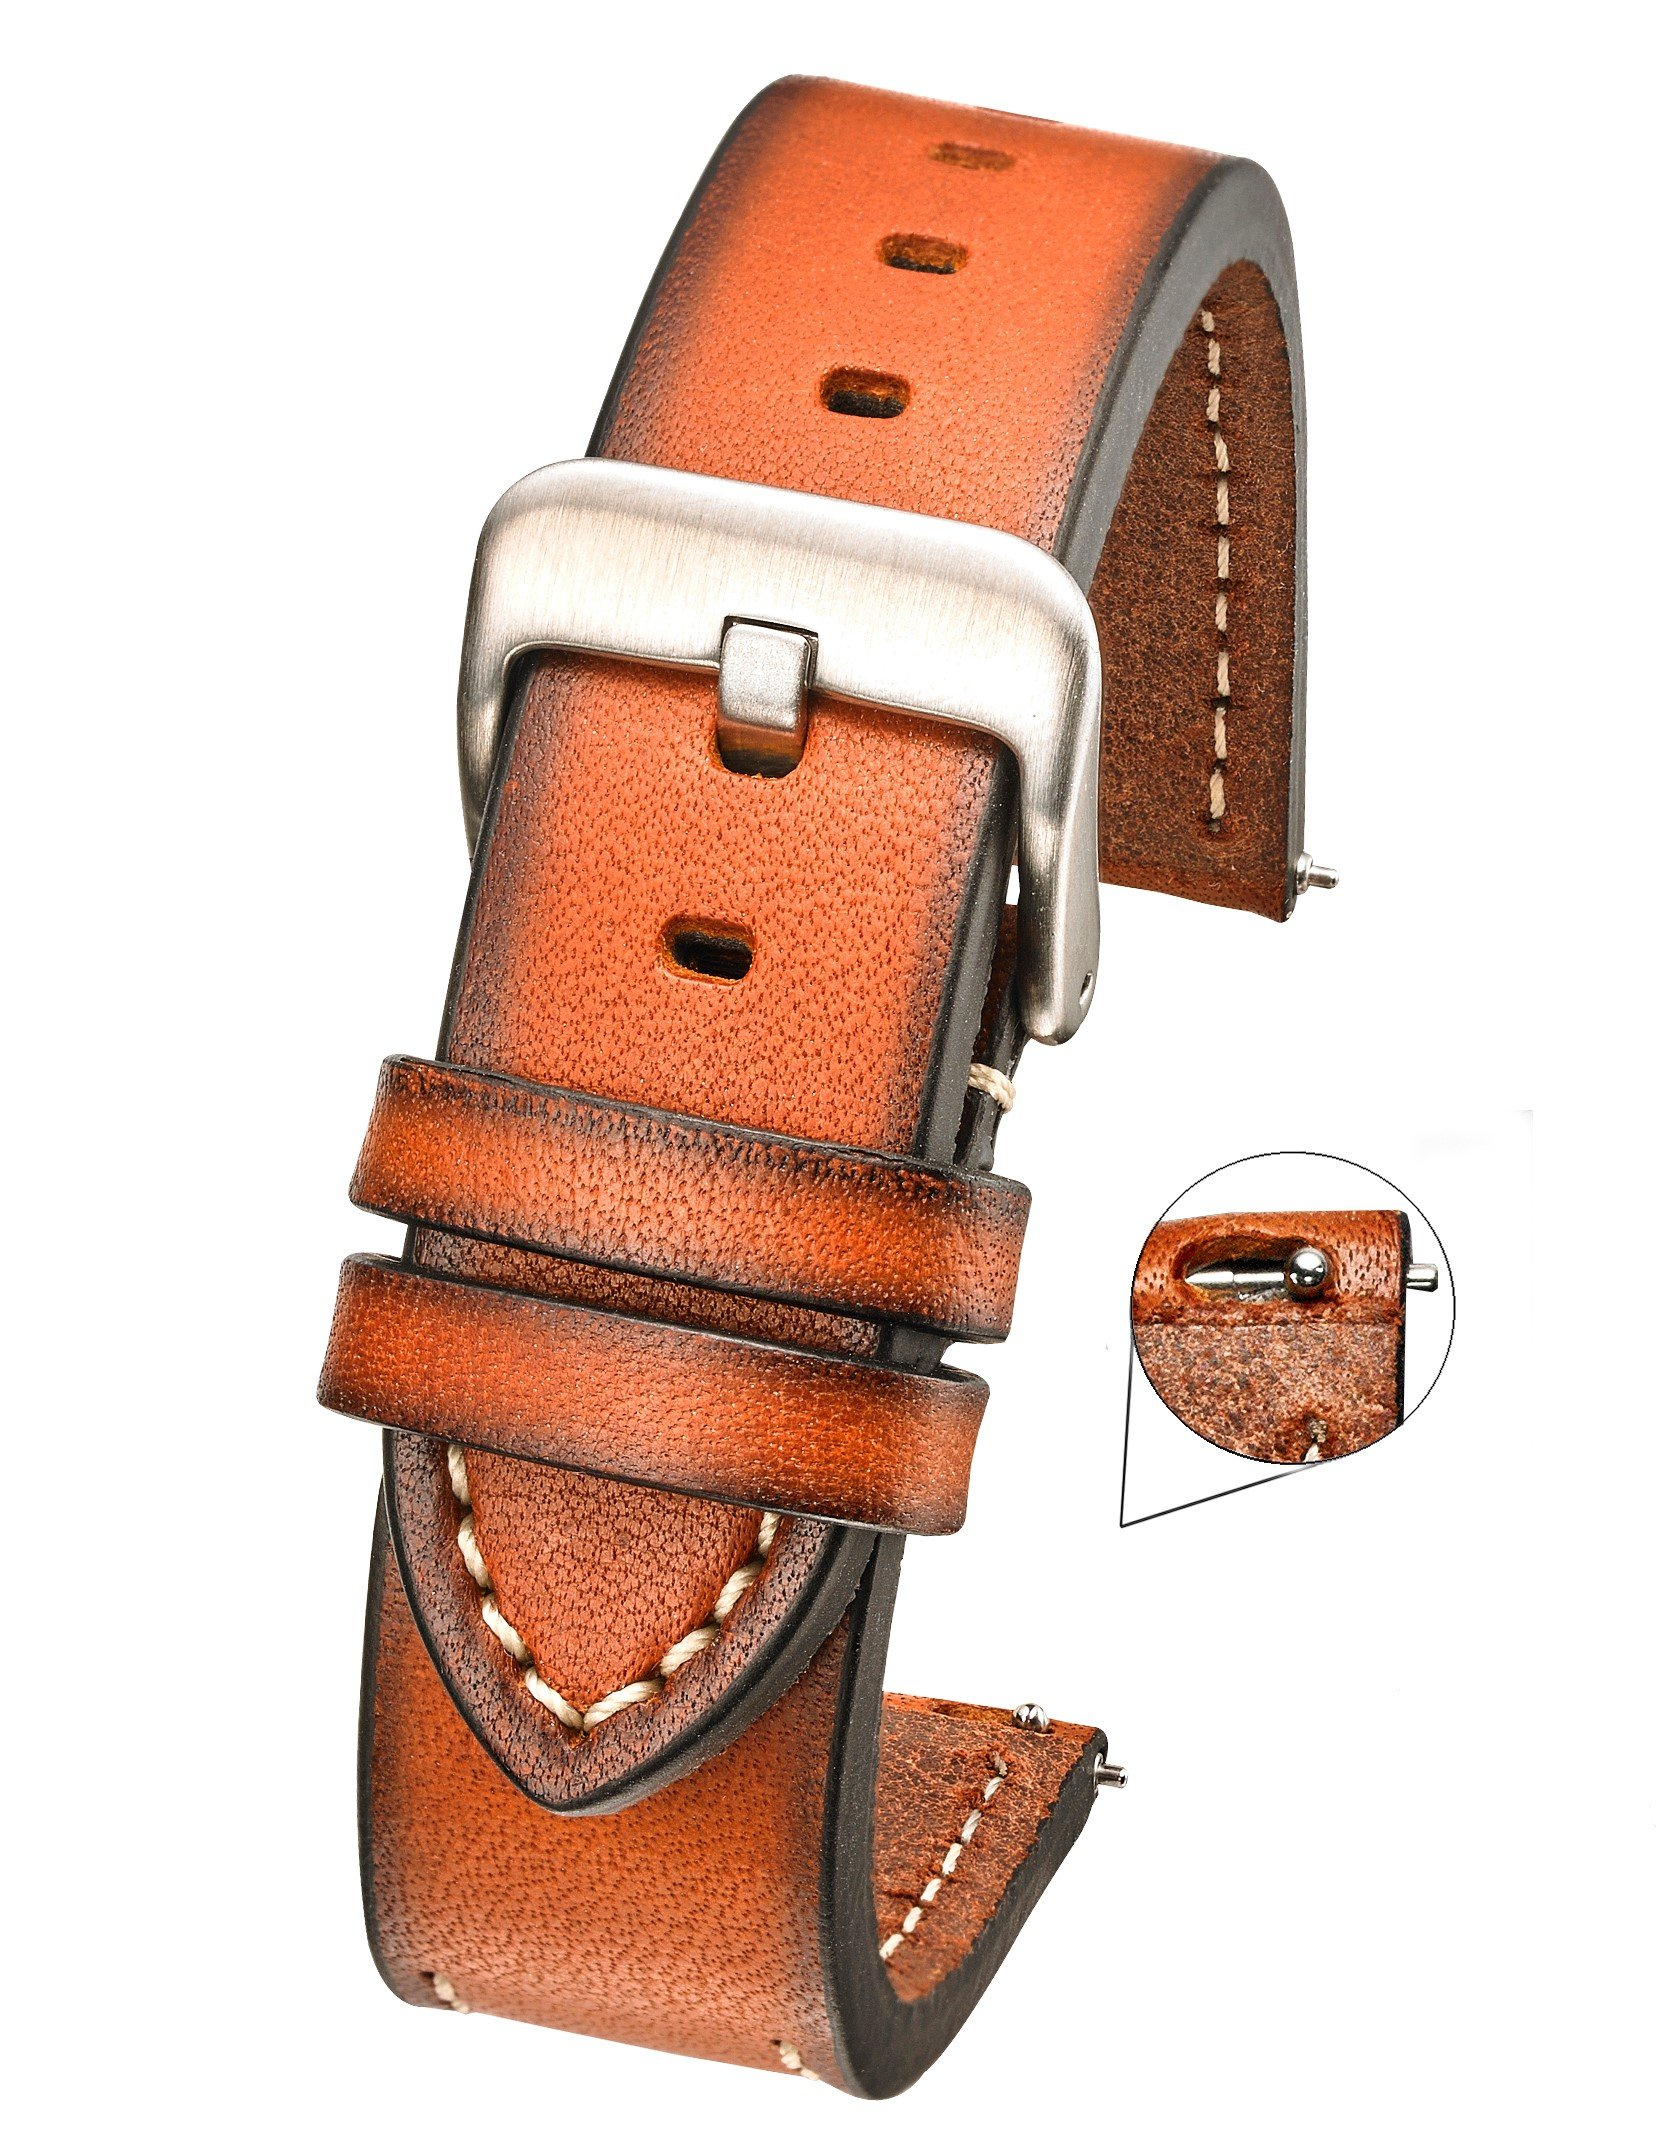 Hand Painted Classic Thick Genuine Leather Watch Band with Quick Release Spring Bars -Full Grain Leather Watch Strap 22mm - Brown